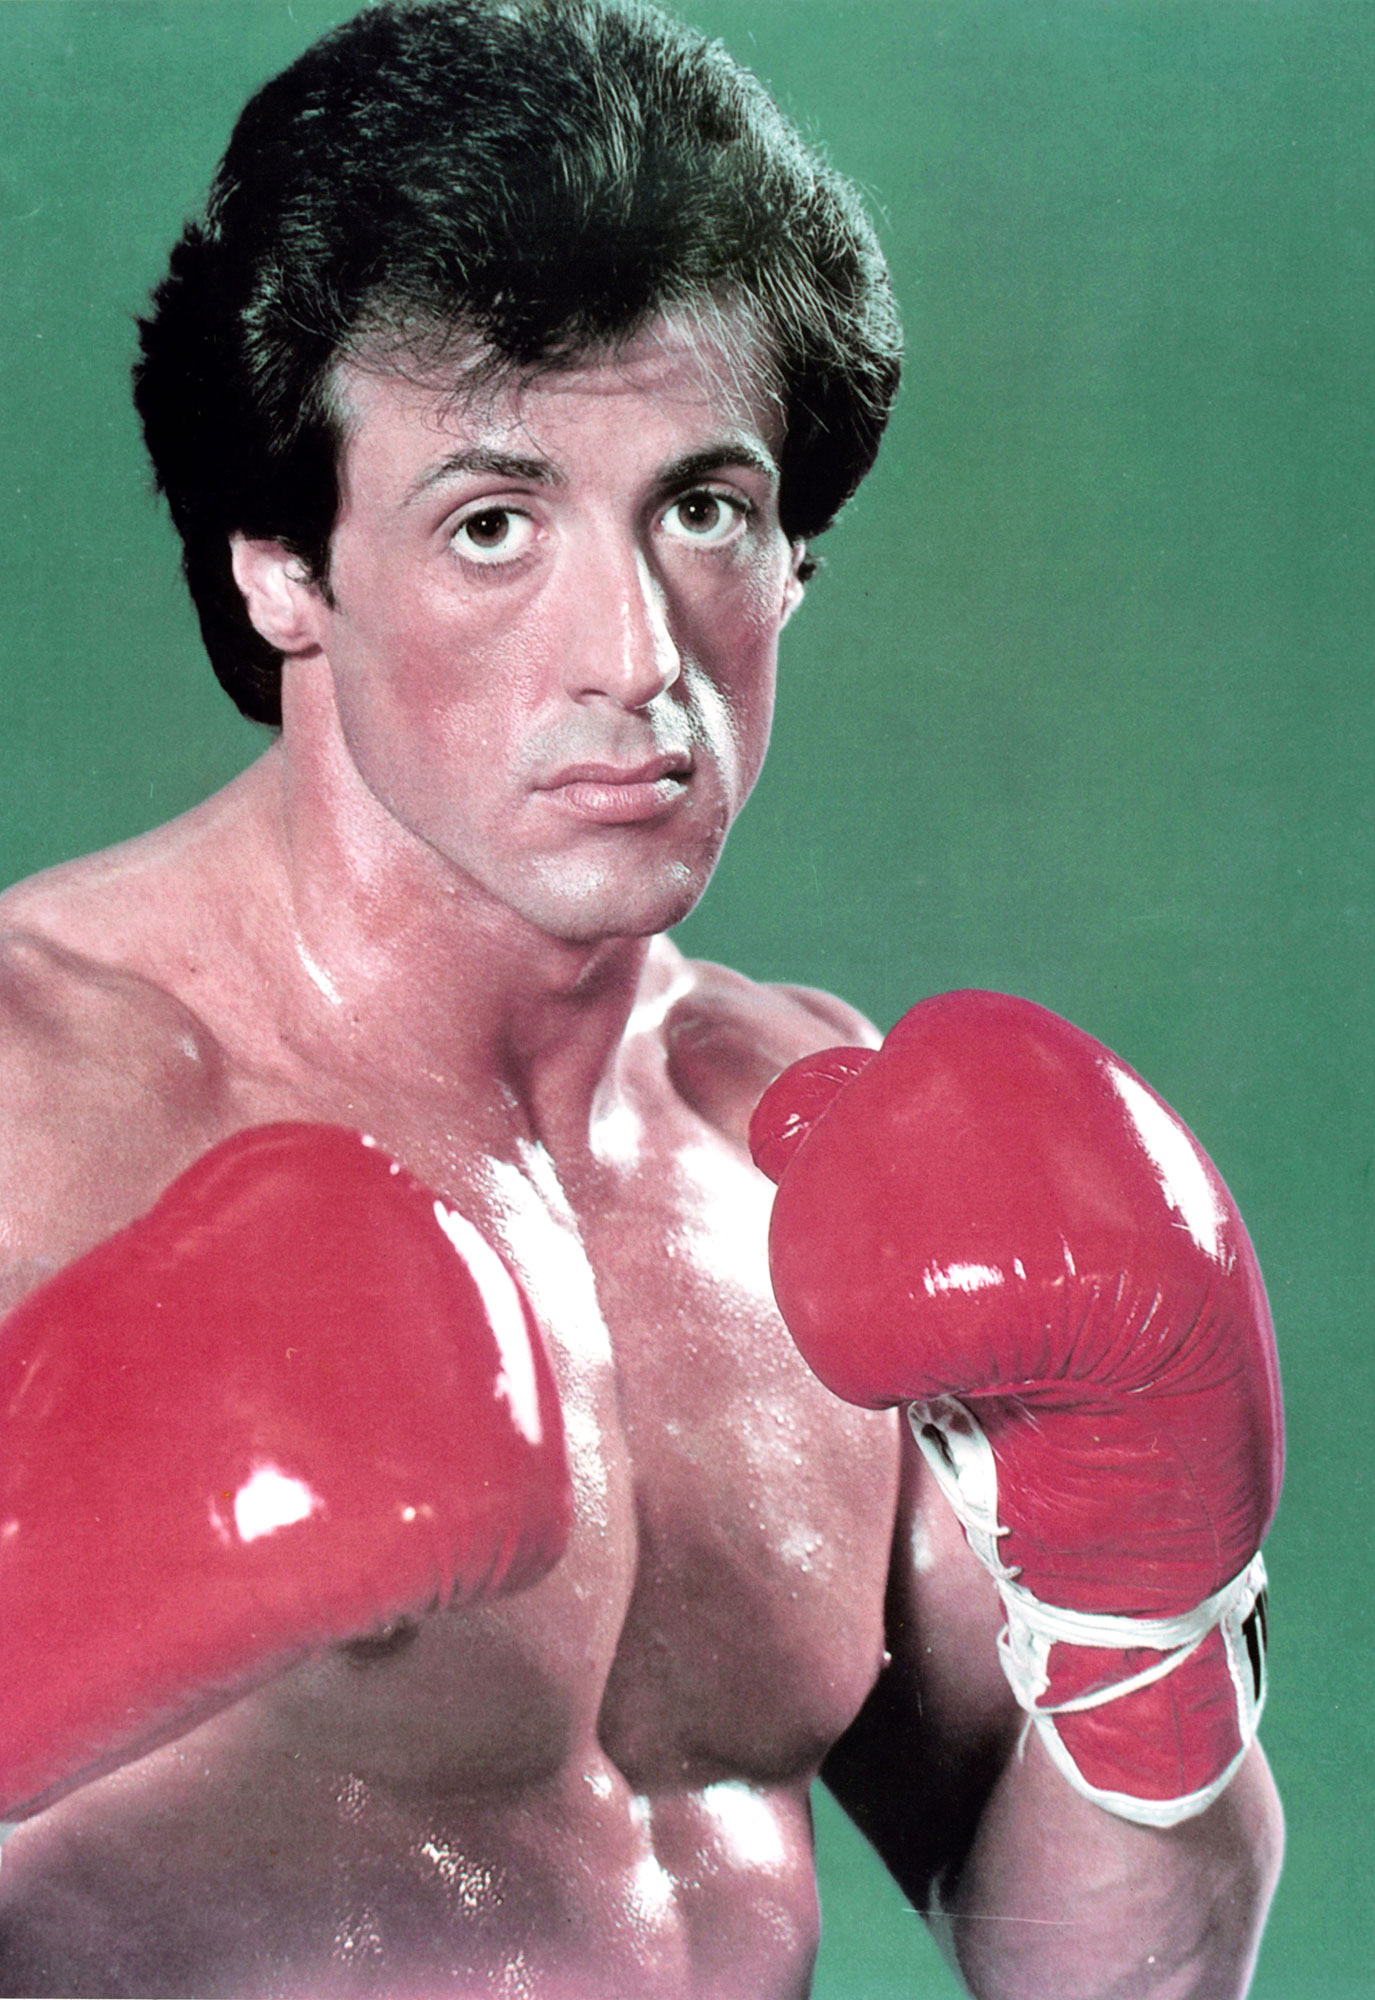 Sylvester Stallone Teachers Before Fame - Stallone is best known for portraying boxer Rocky Balboa in the Rocky movie series, but before he climbed the stairs at the Philadelphia Museum of Art, he was teaching physical fitness in a different capacity — as a gym teacher at the American College in Switzerland!